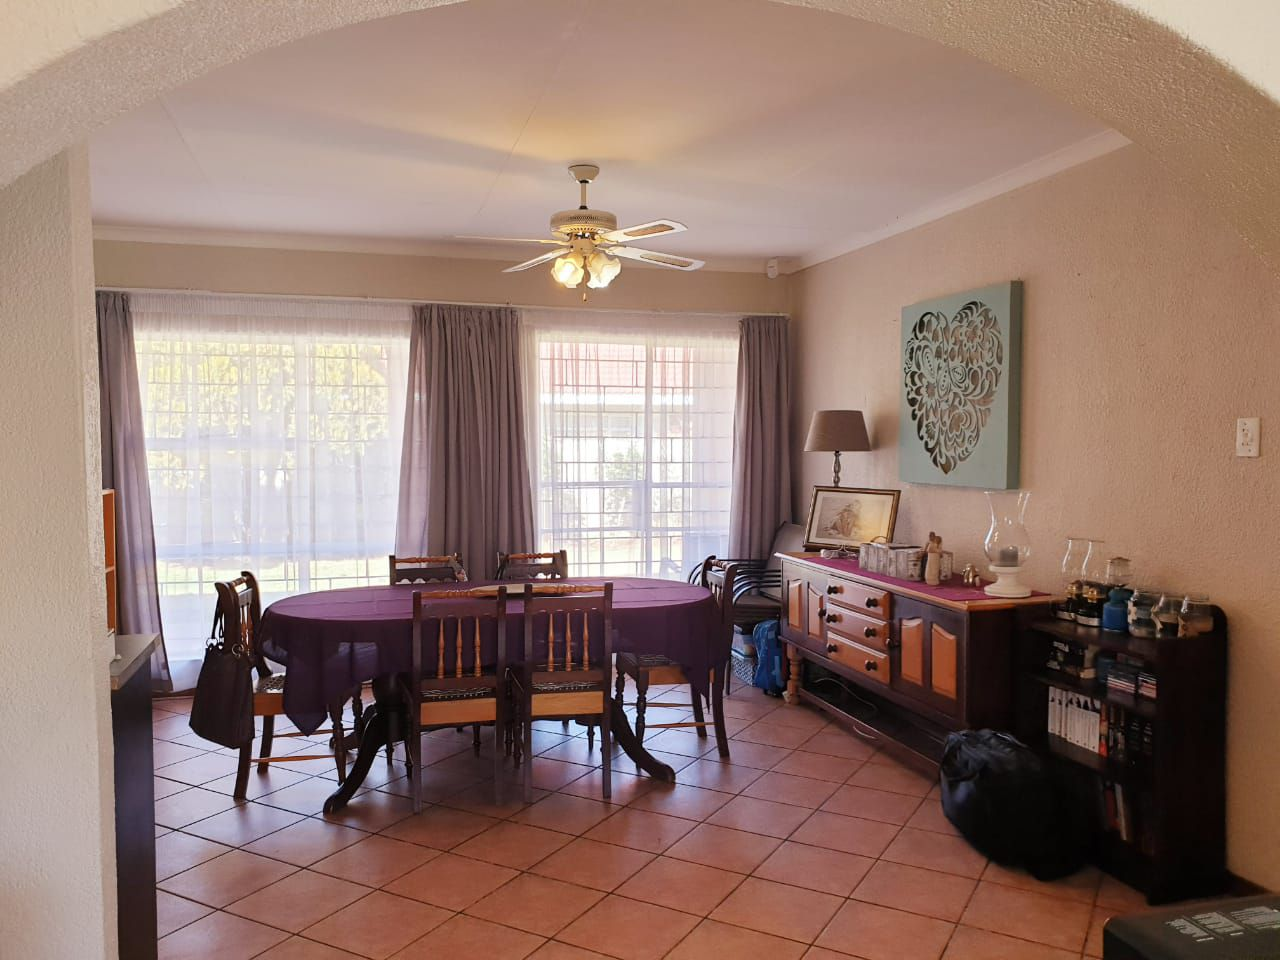 House in Kanonierspark - WhatsApp Image 2019-07-15 at 12.11.33 (1).jpeg